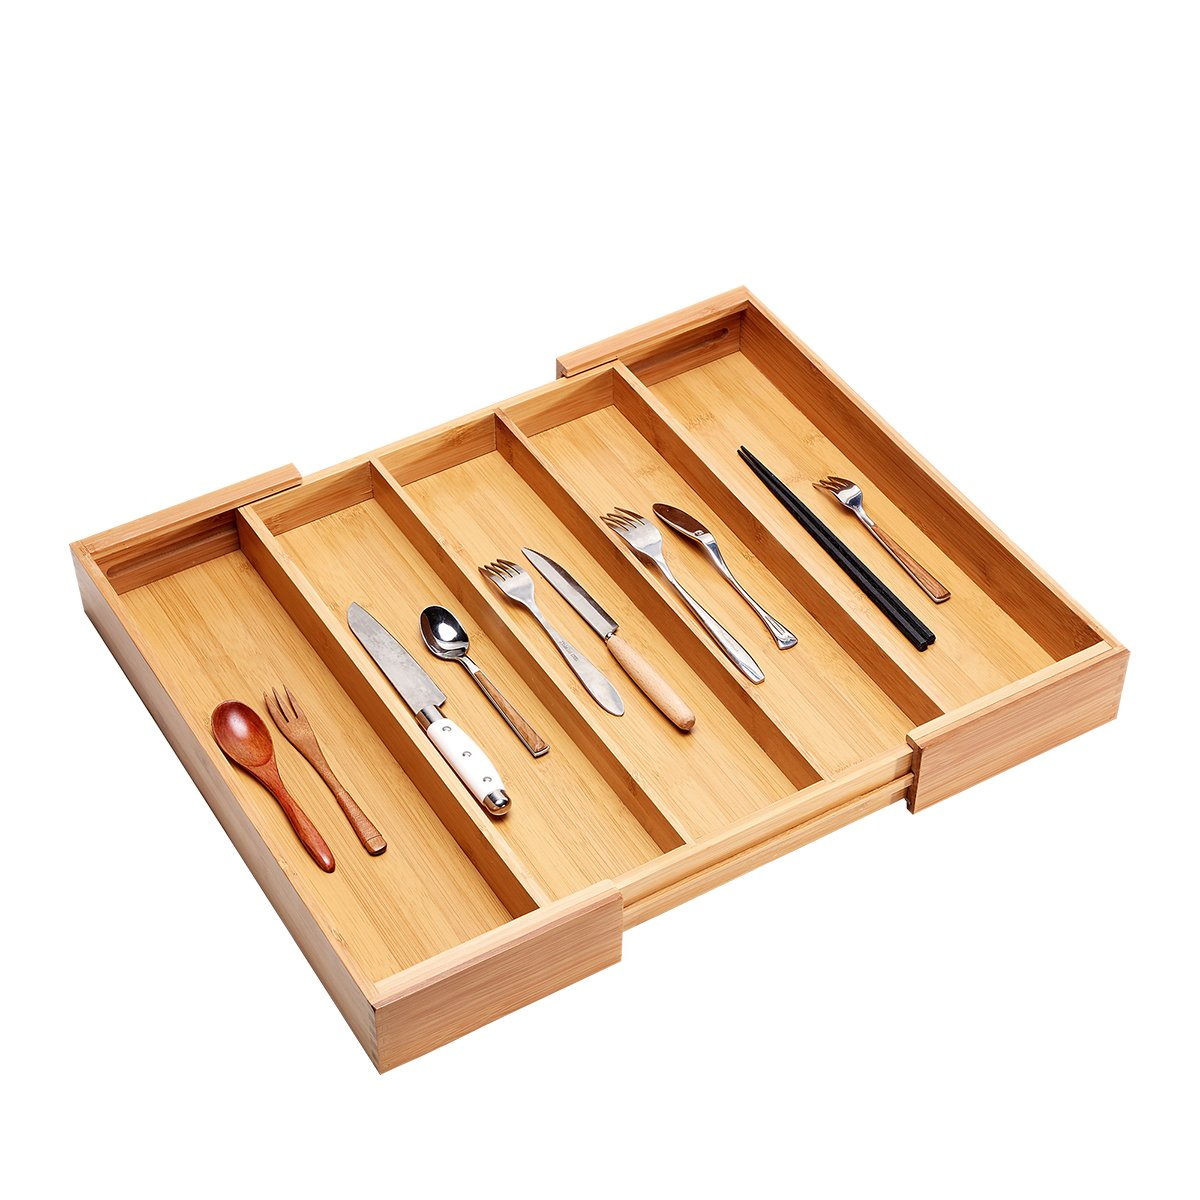 Bamboo Expandable Cutlery Tray & Drawer Organizer, 3 Compartments, with 2 Adjustable Dimensions; Beautiful, Durable and Multifunctional Utensil Holder and Organizer.